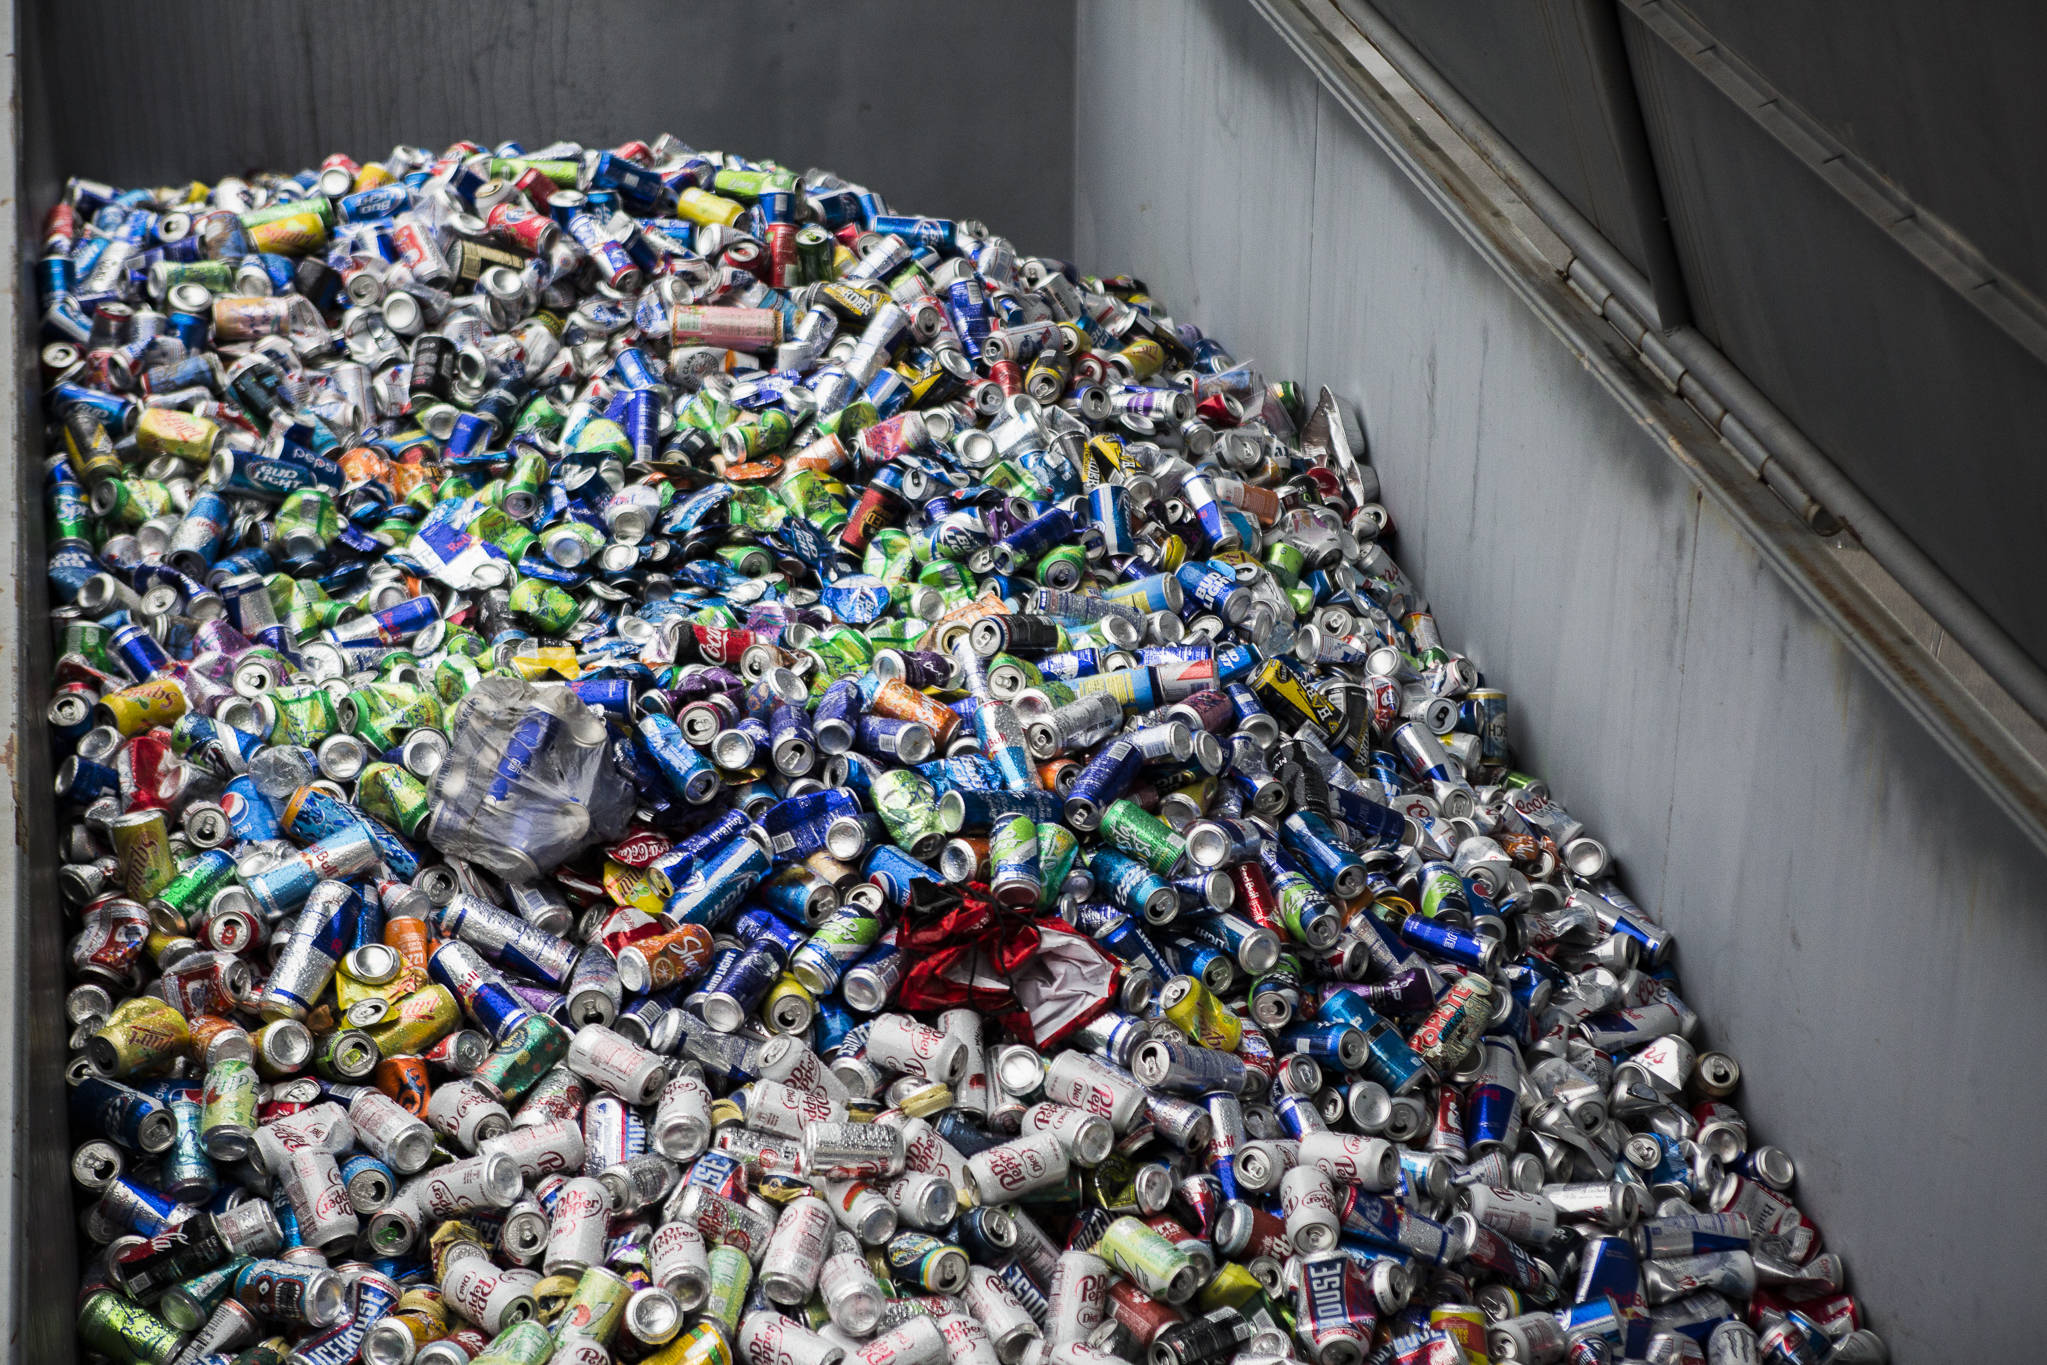 Aluminum cans fill a large recycling container at the Airport Road Recycling & Transfer Station on Nov. 24 in Everett. Photo by Olivia Vanni/The Herald (Everett)